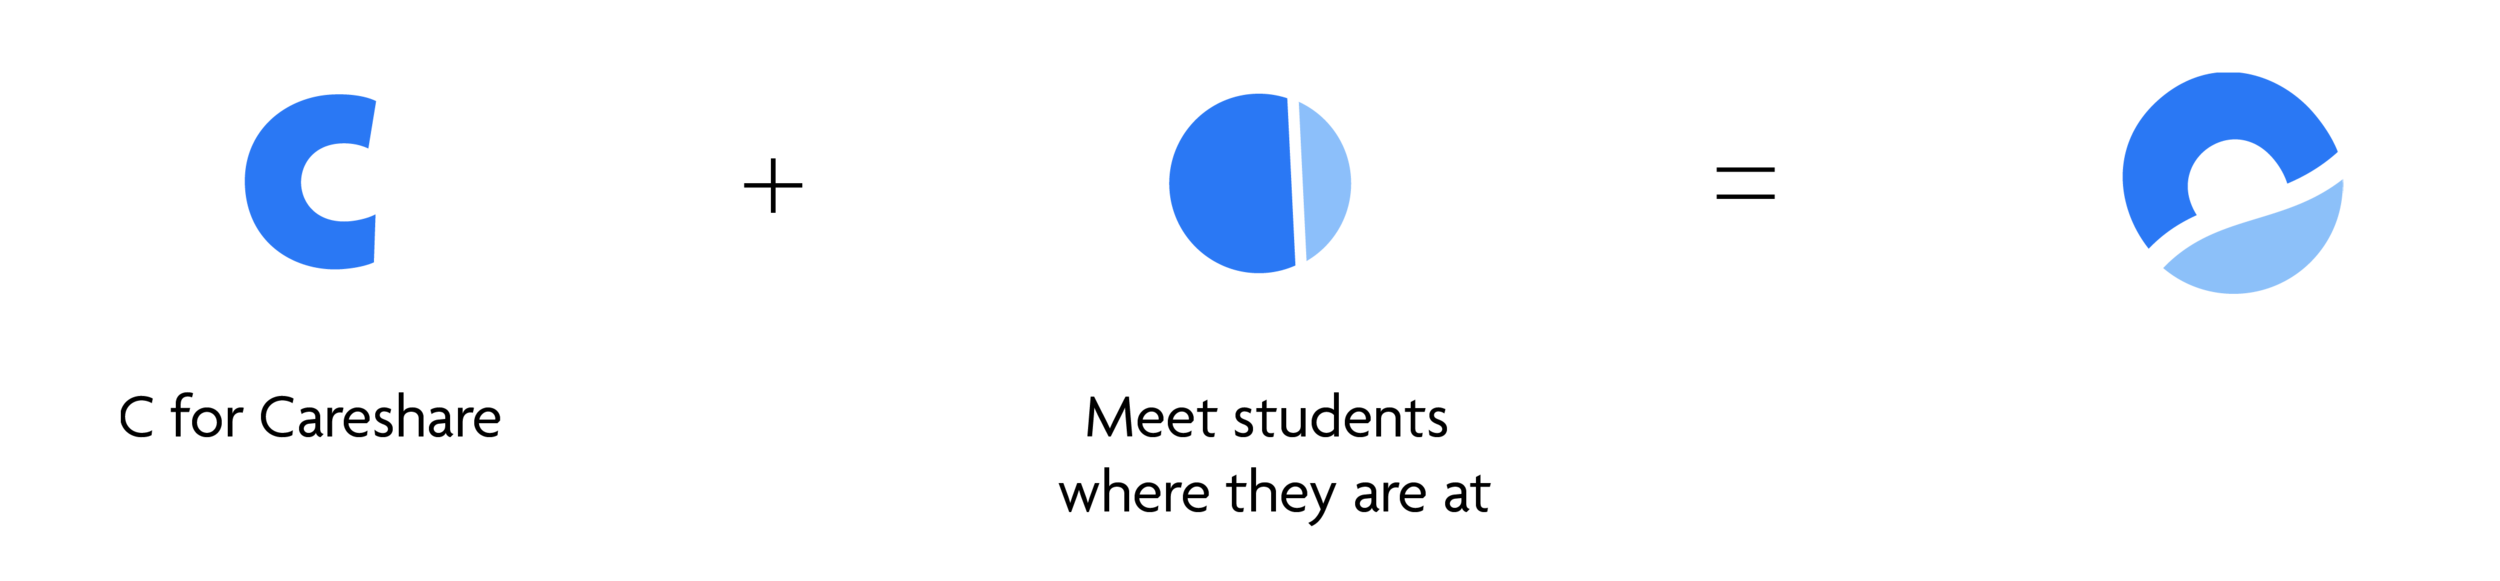 logo-meaning.png